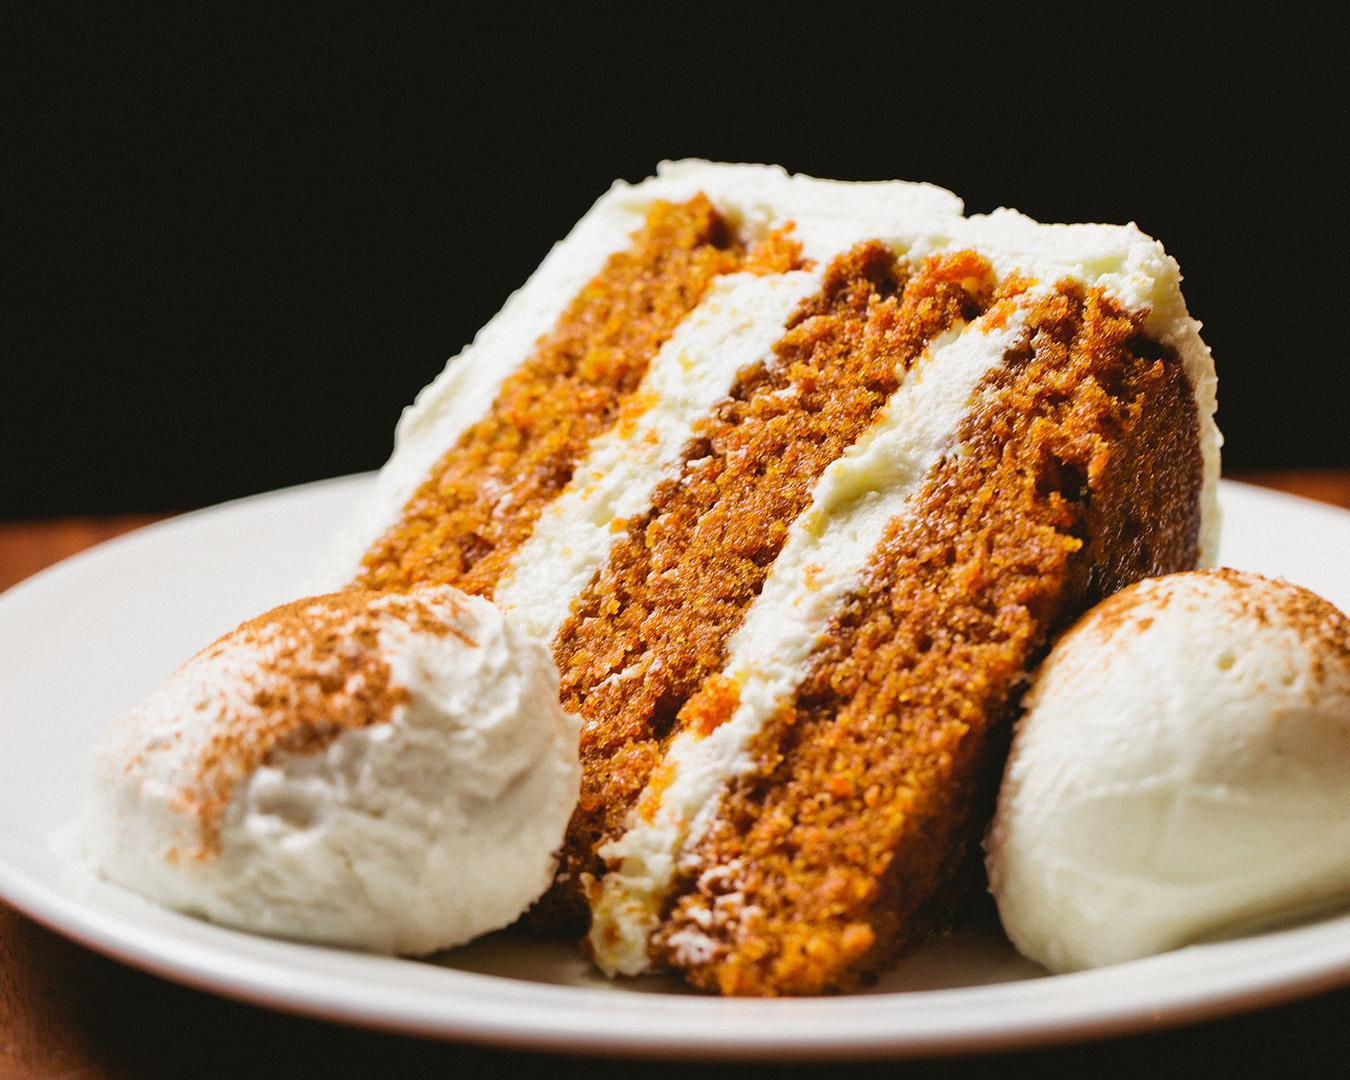 Martha's Special Occasion Carrot Cake